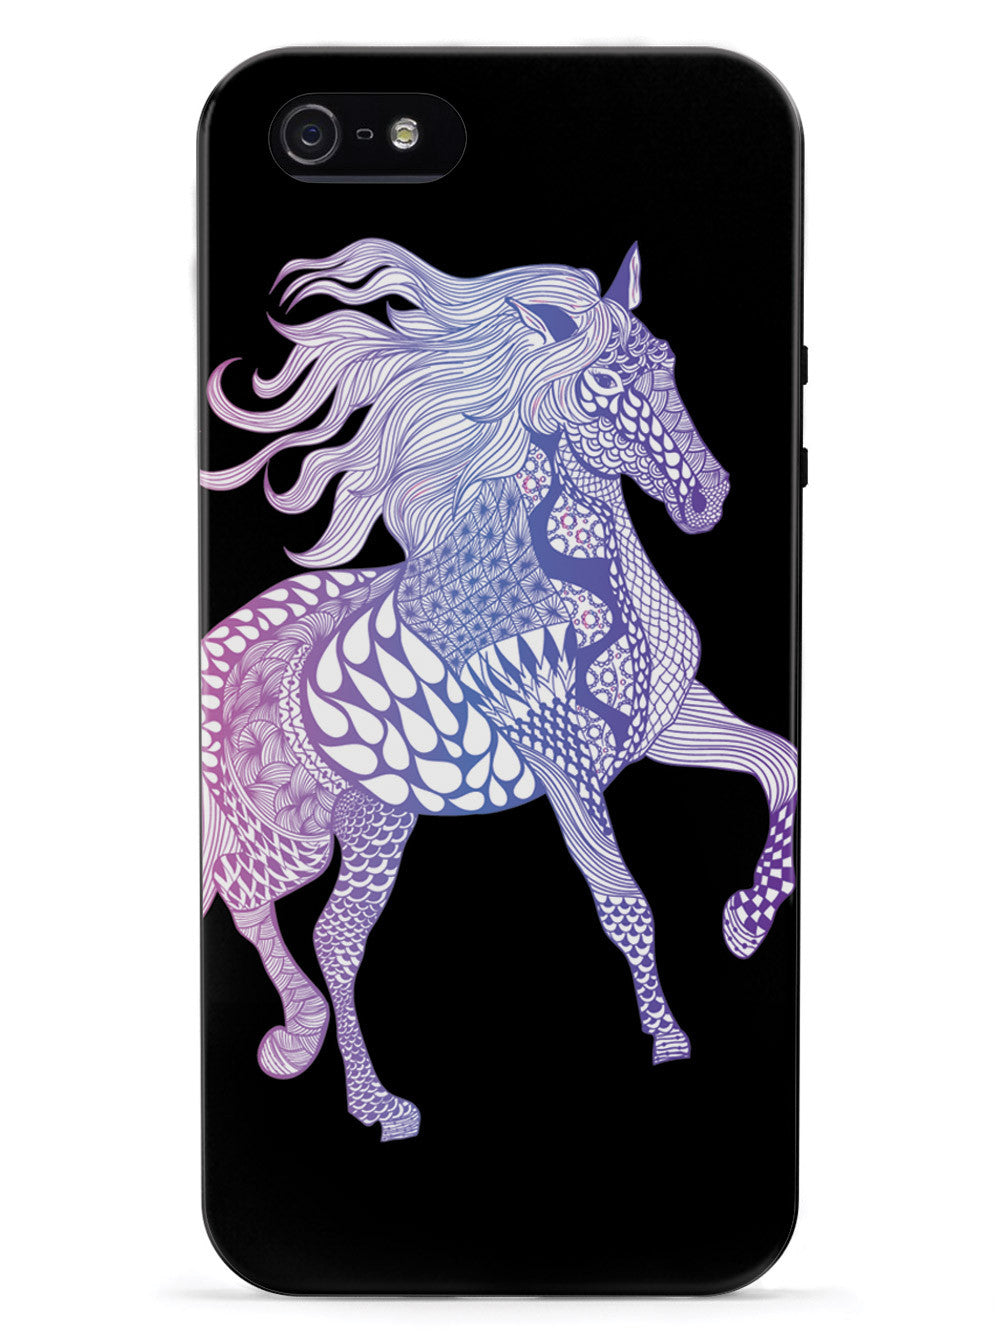 Zentangle Horse - Magenta Haze - Black Case